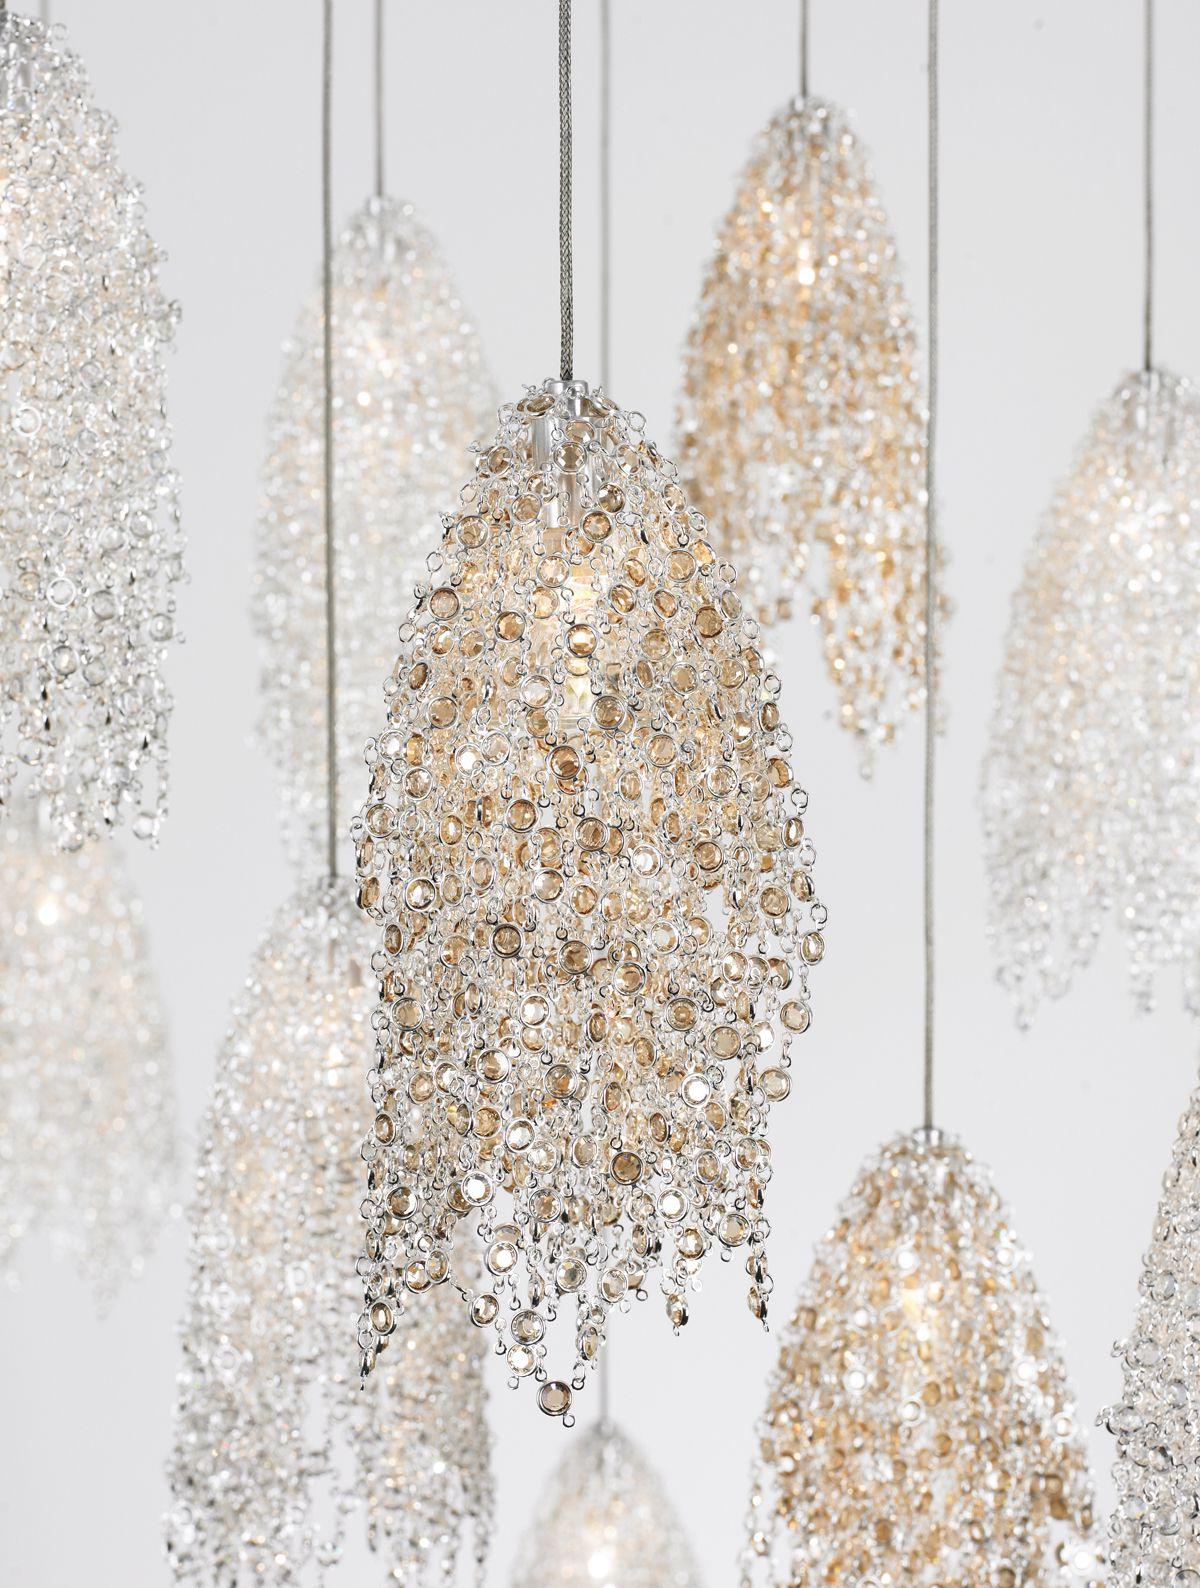 2020 Love These! I'm Using 5 Of Them Over My Dining Room Table With Regard To Vincent 5 Light Drum Chandeliers (View 9 of 25)